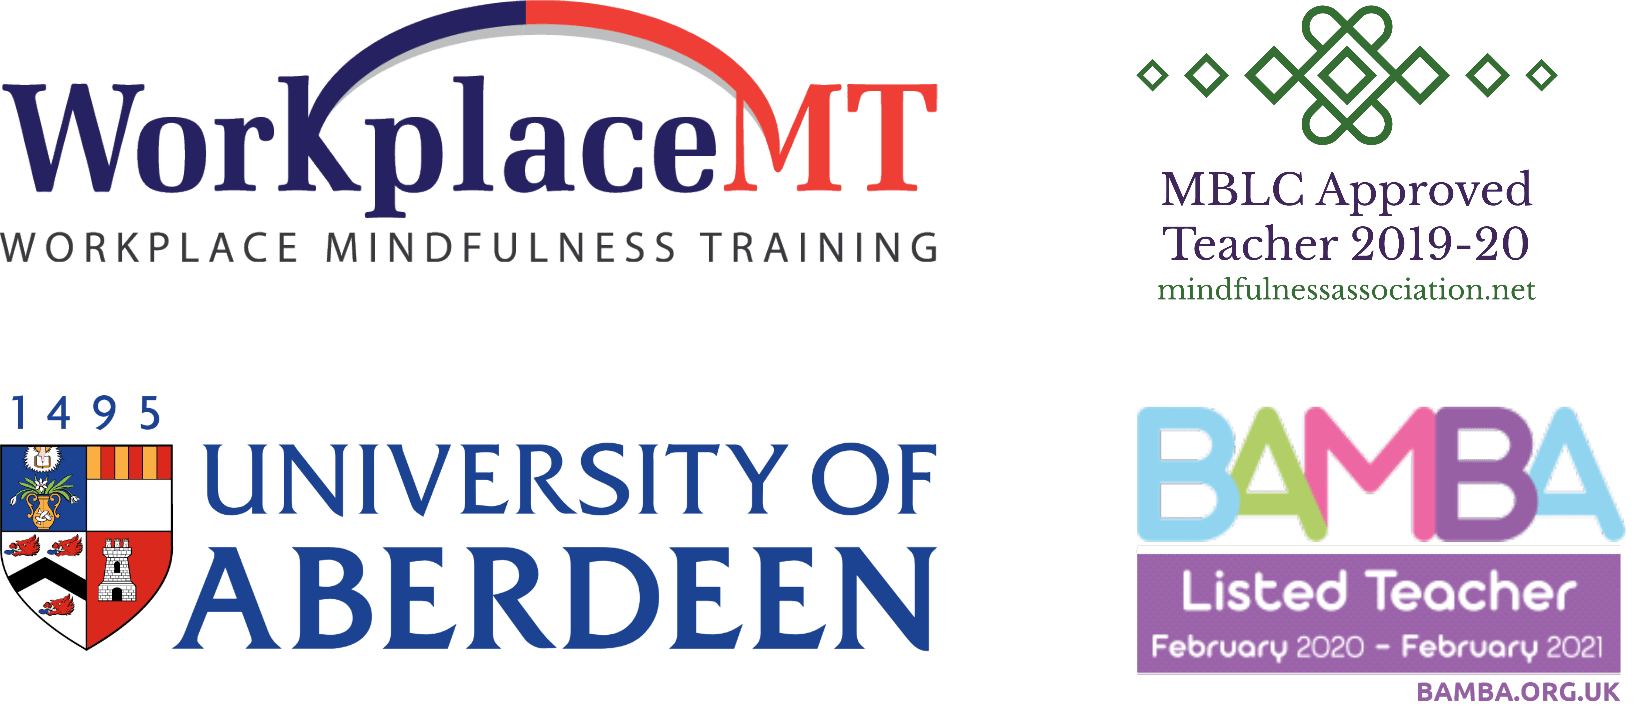 WorkplaceMT logo, MIndfulness Association MBLC approved teacher logo, BAMBA listed teacher logo, and University of Aberdeen logo